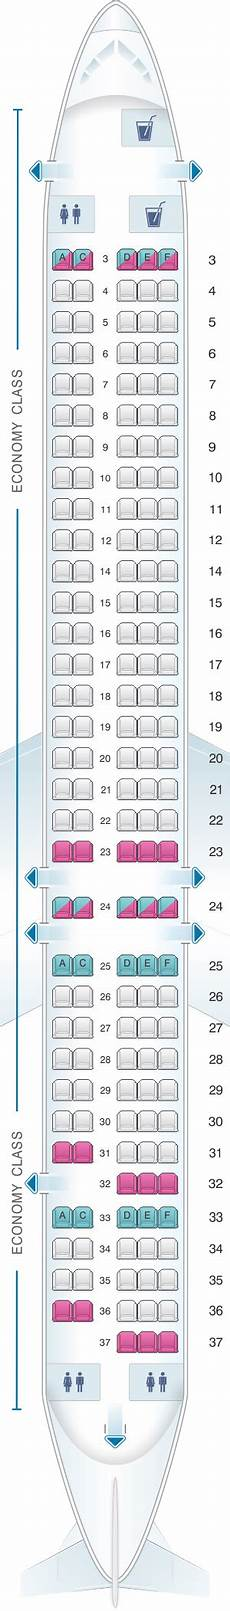 Delta Boeing Douglas Md 80 Seating Chart Seat Map Allegiant Air Mcdonnell Douglas Md 80 Seatmaestro